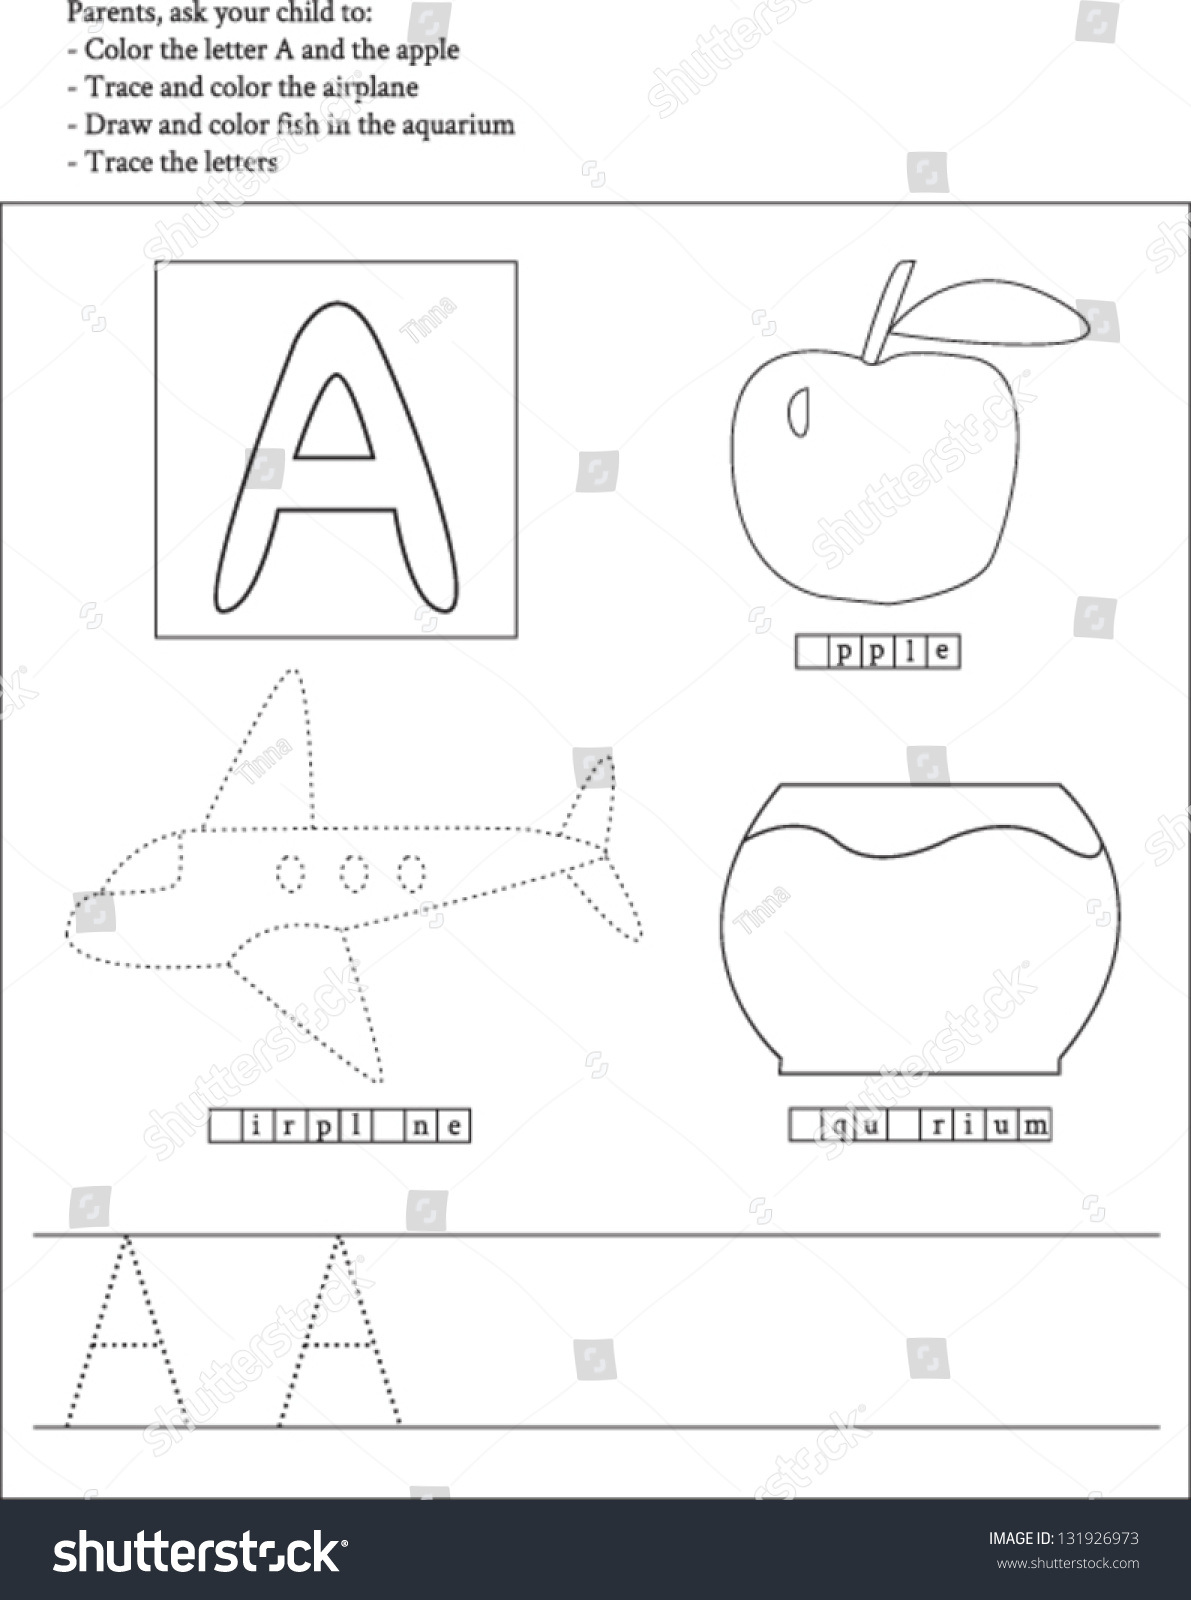 Trace Color Letter A Worksheet Preschoolers Stock Vector